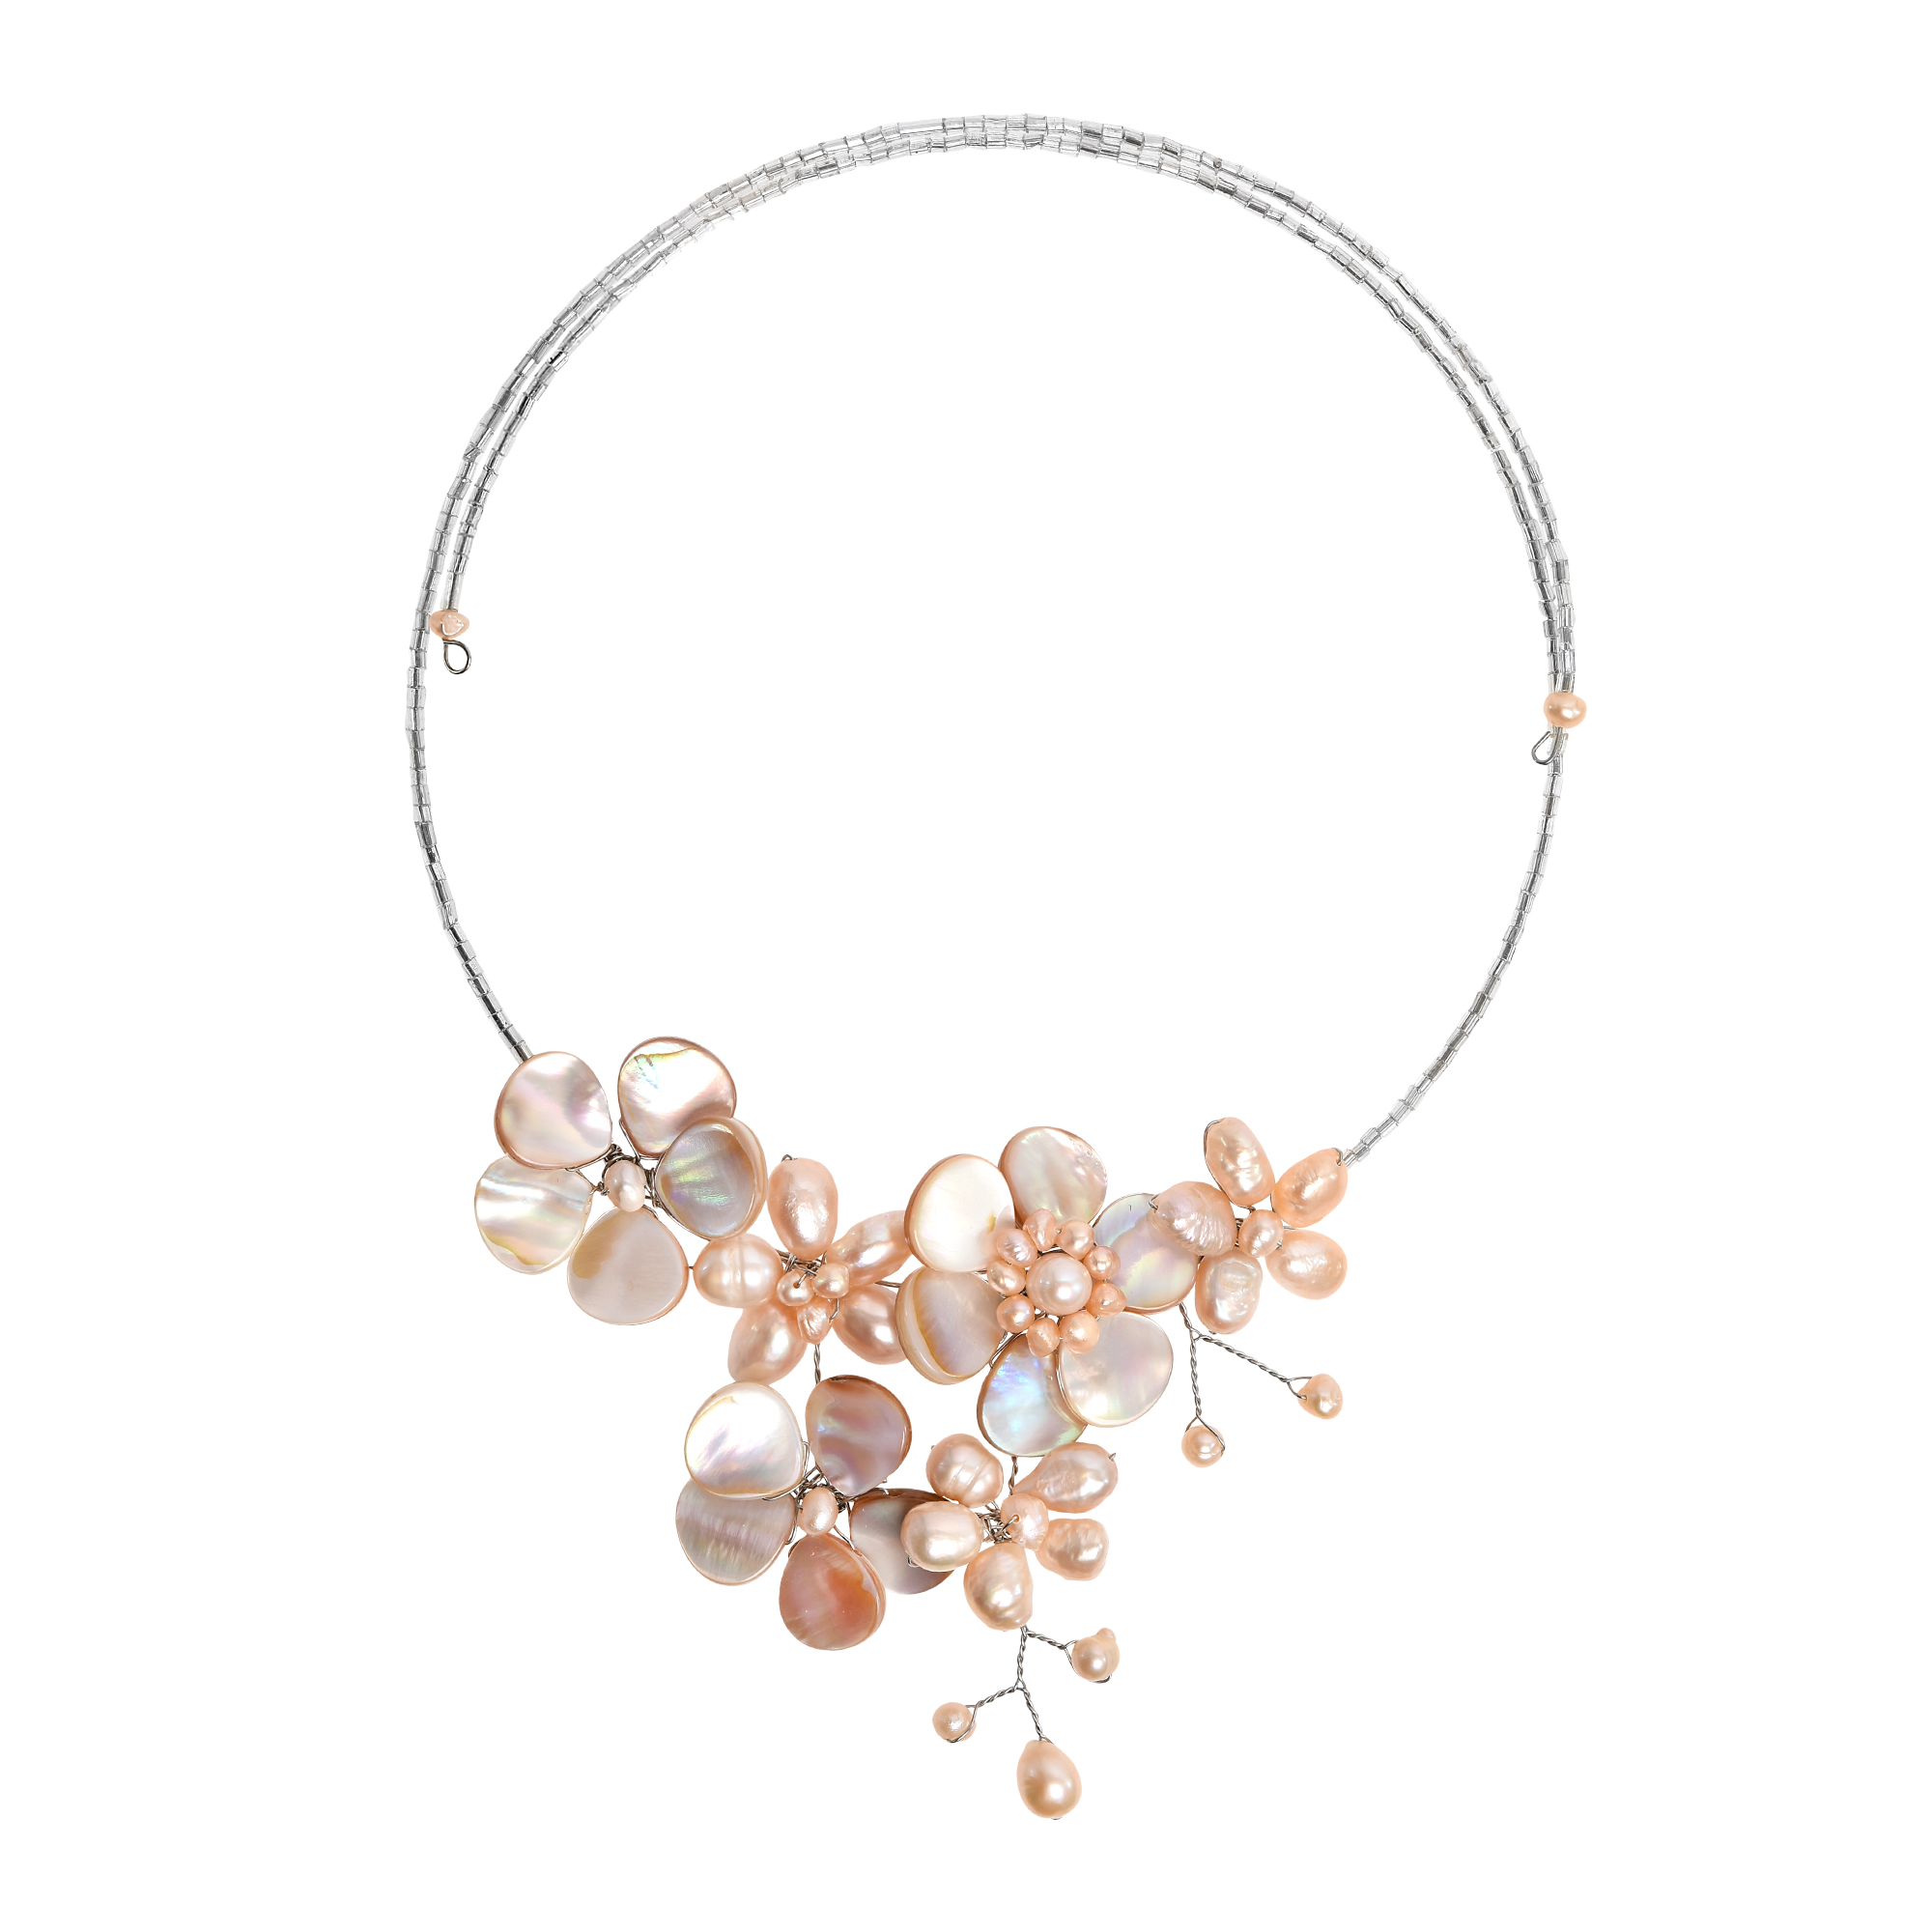 thumbnail products strand pearl necklaces pink necklace bauble faux original store collections online bliss multi